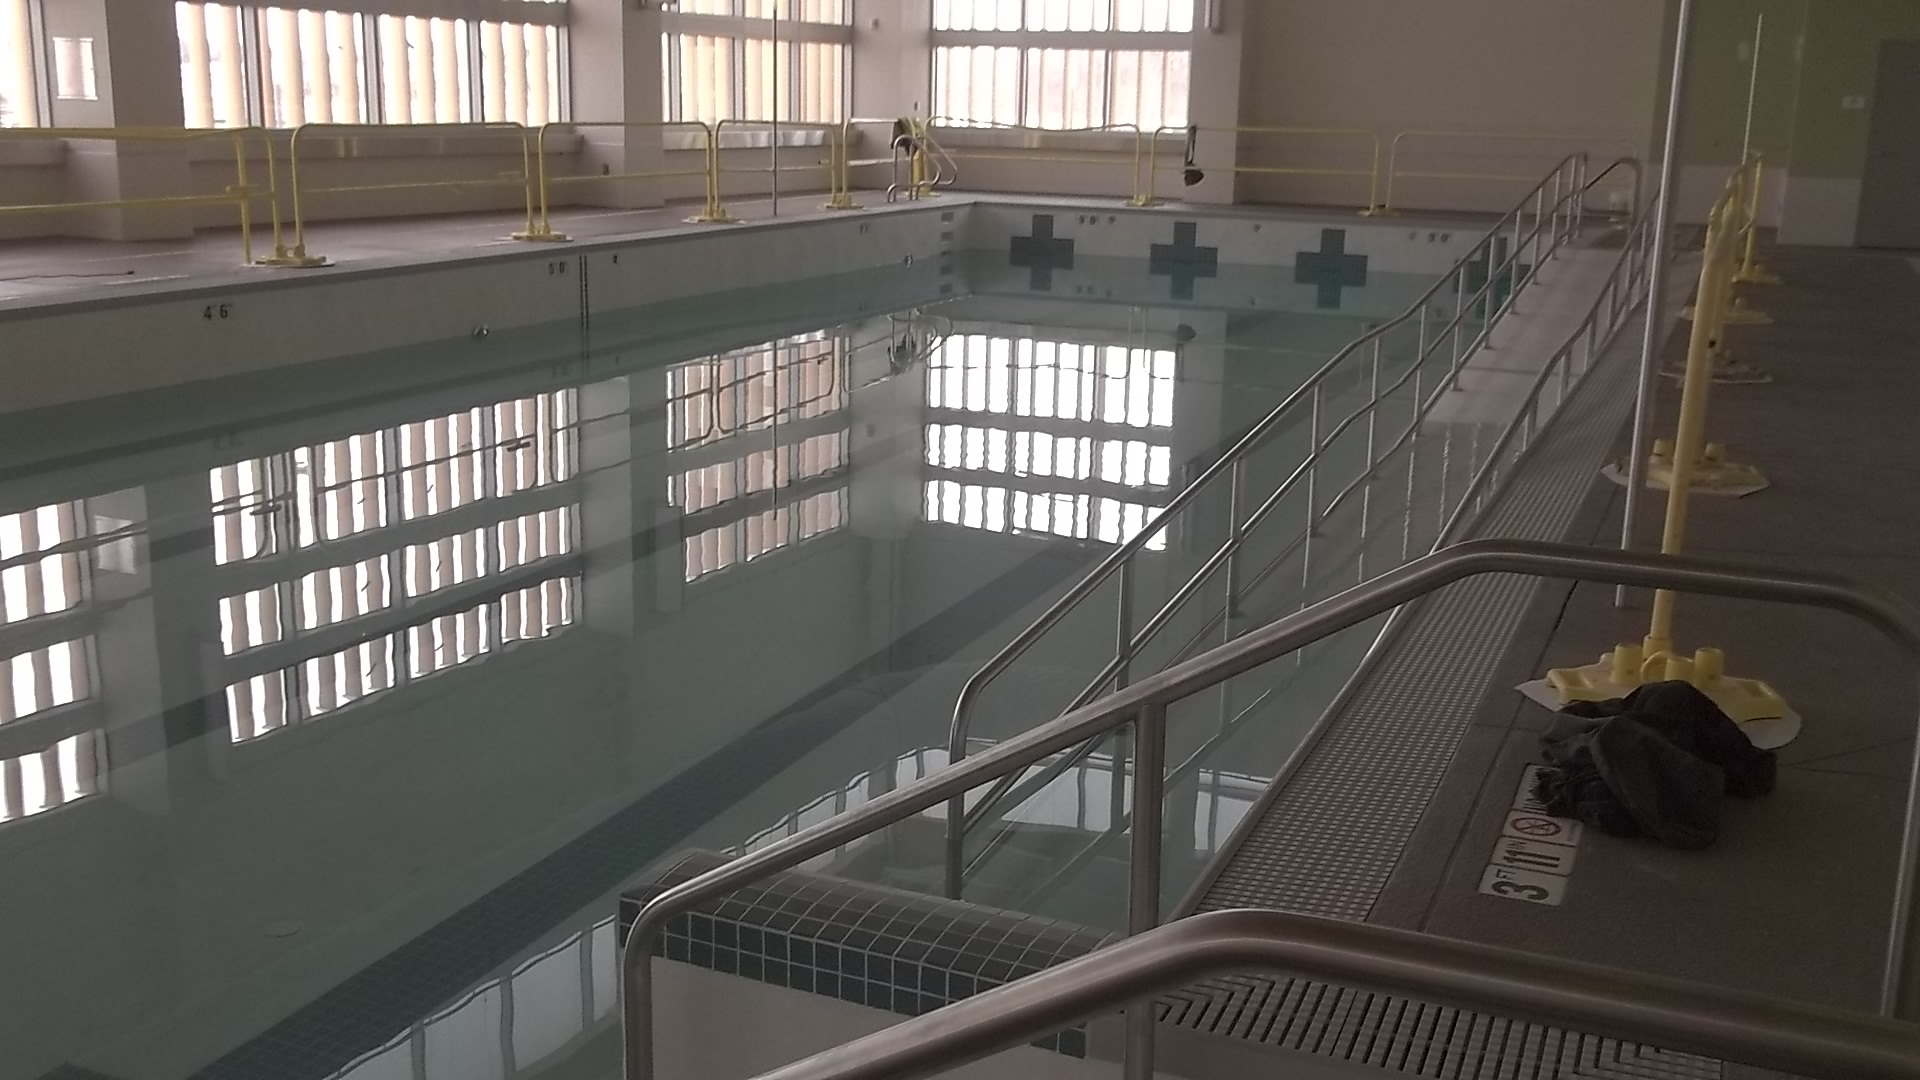 Indoor pool area at the ADA Compliance for Pools